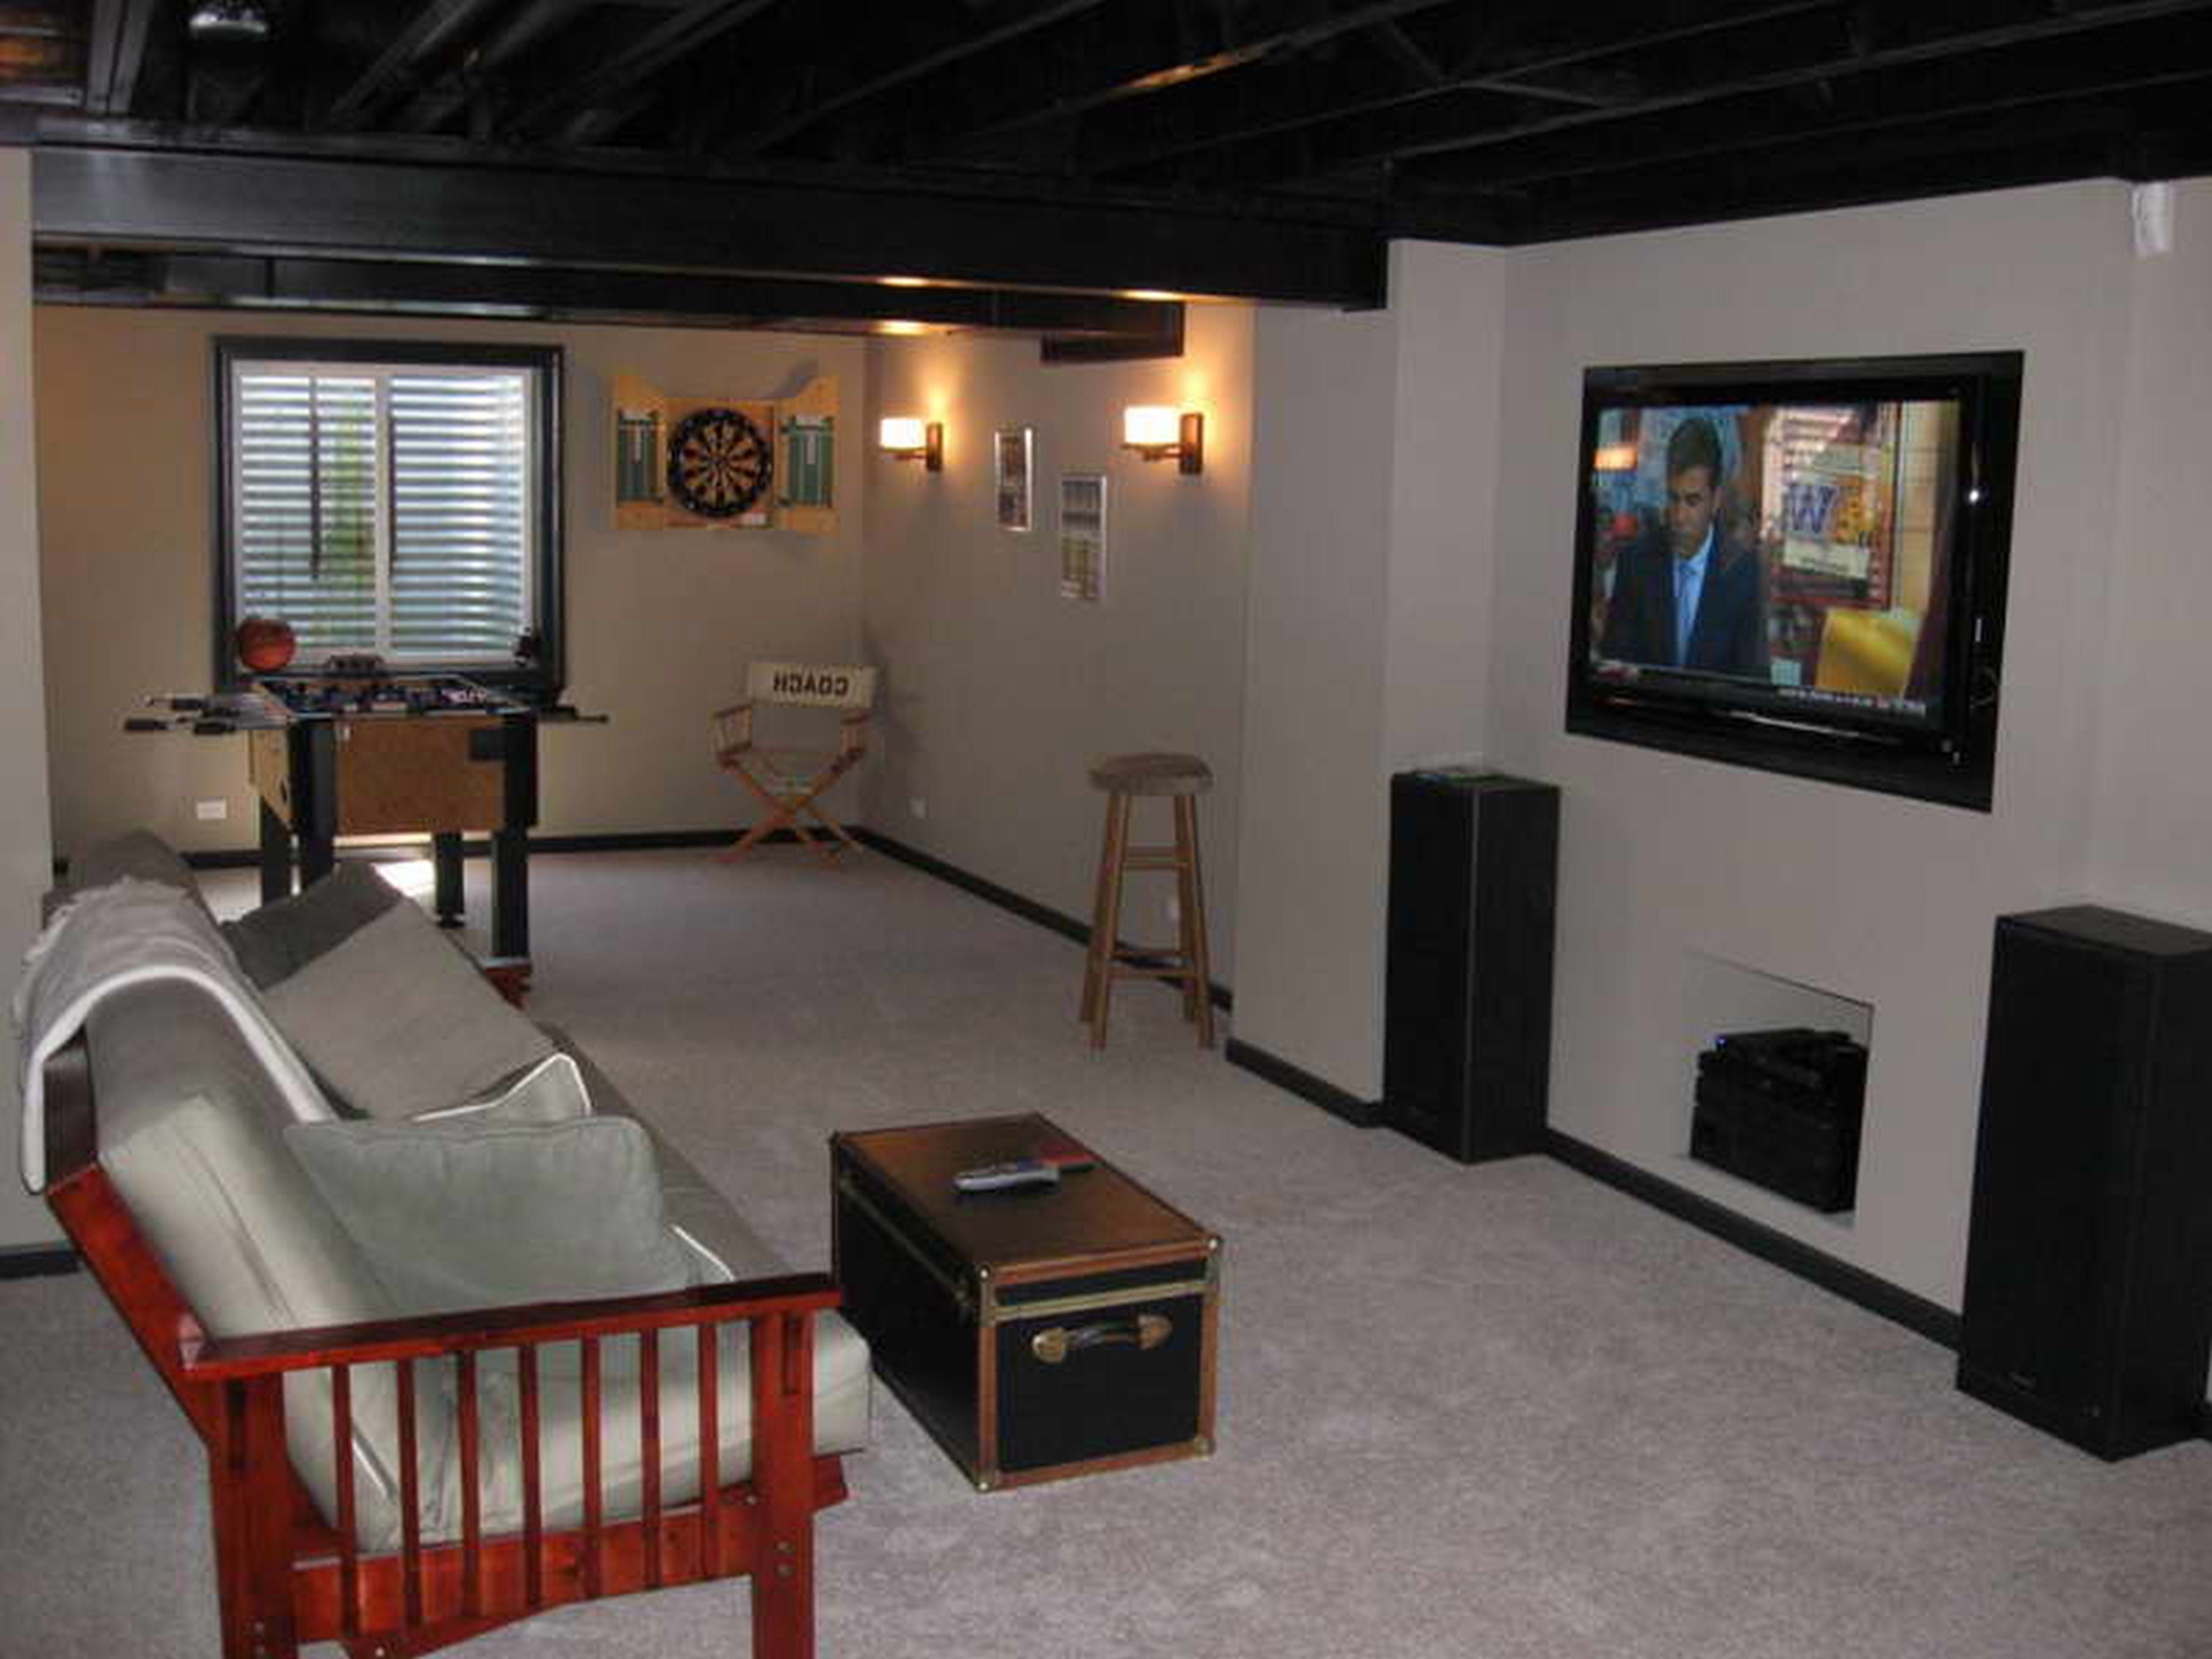 Best ideas about Small Basement Ideas On A Budget . Save or Pin Awesome Cheap Decorating Ideas For Unfinished Basements Now.